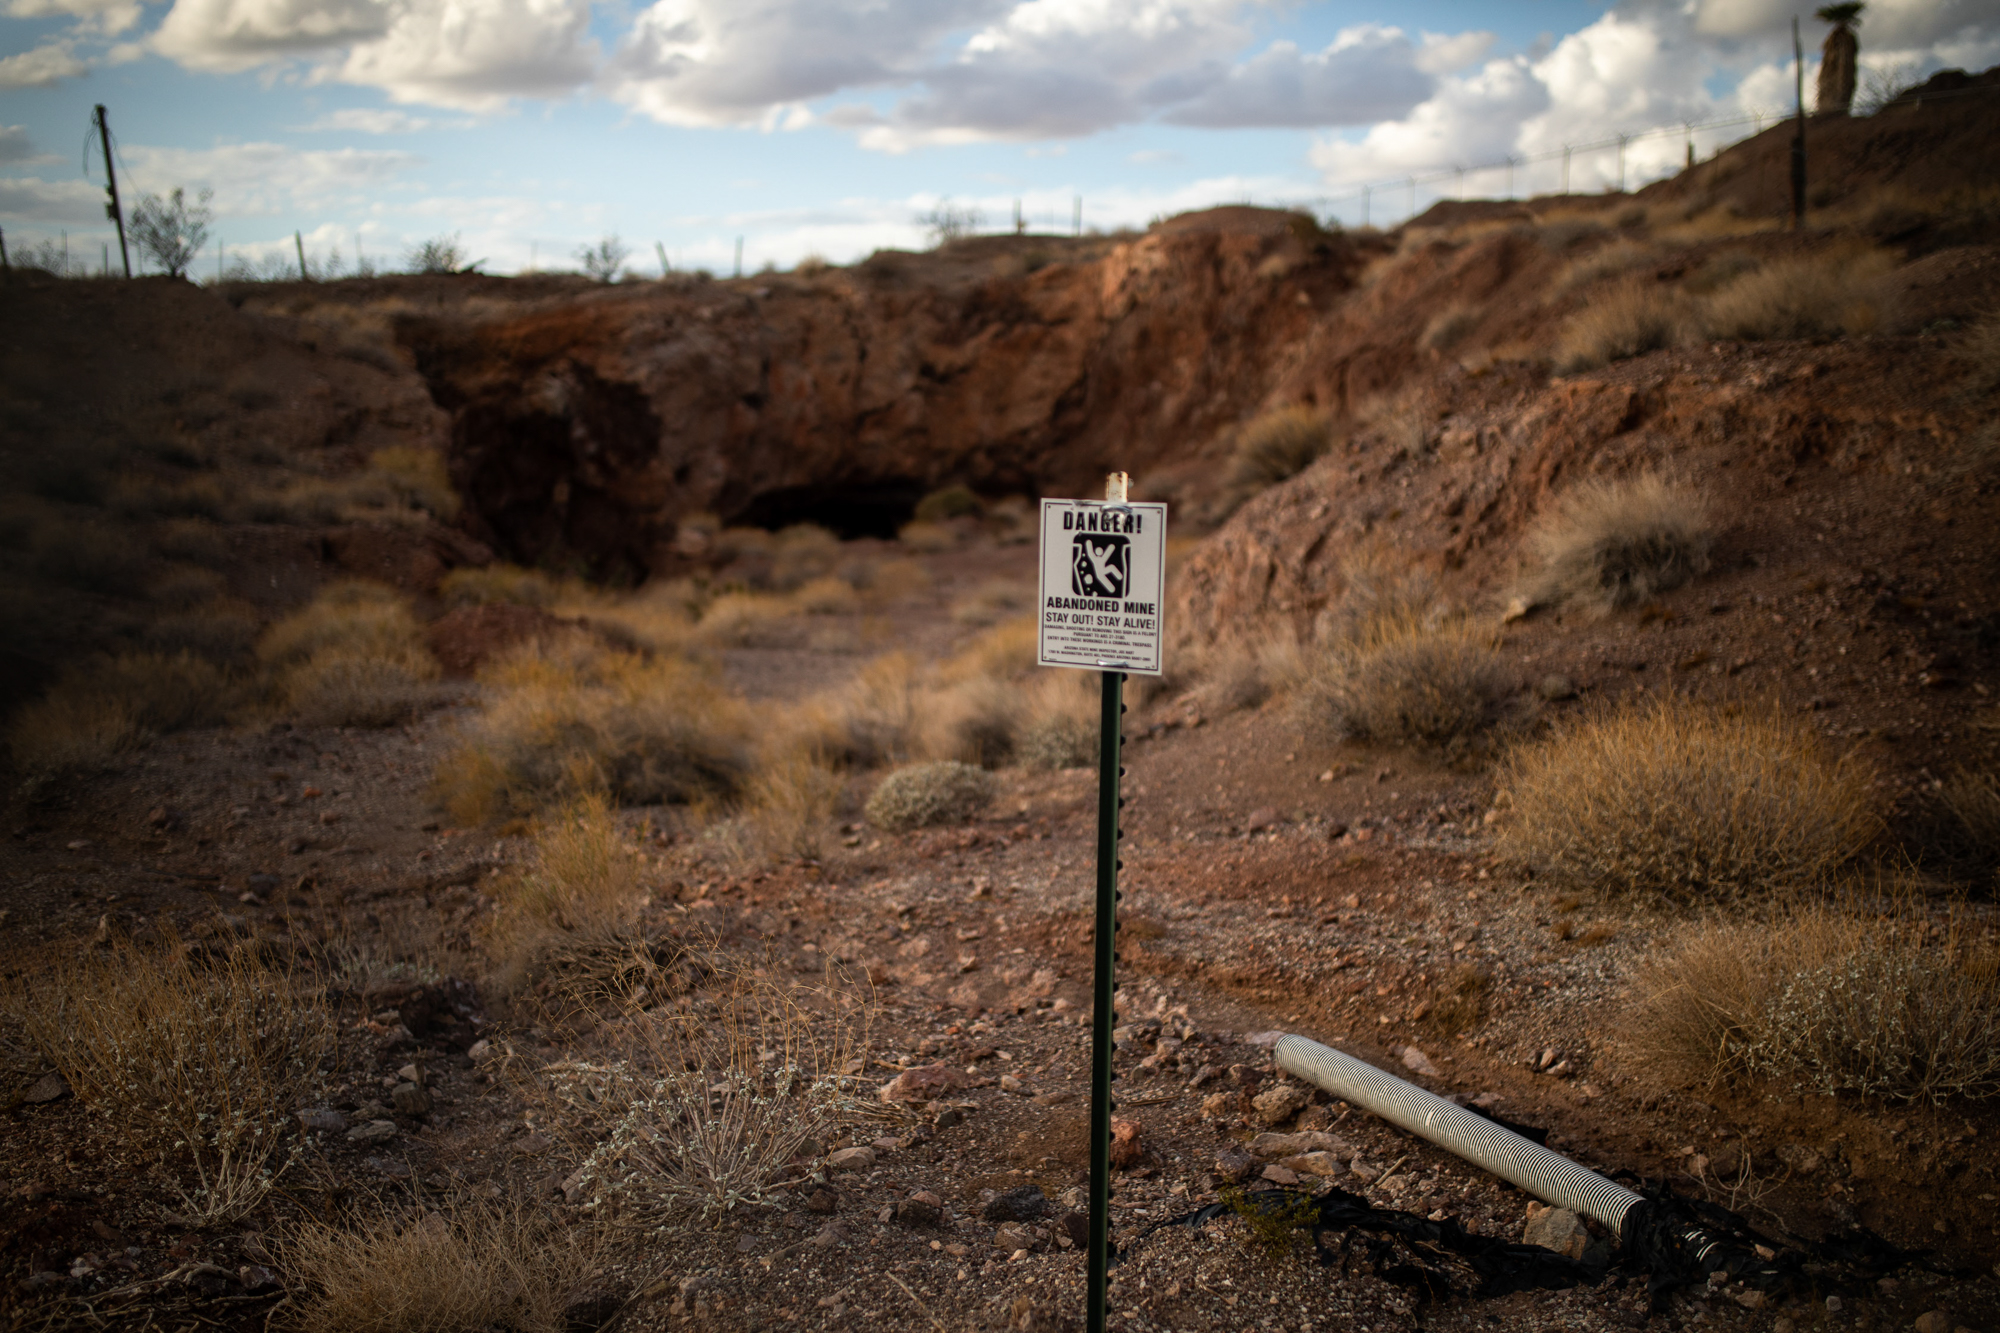 Arizona's abandoned mine problem